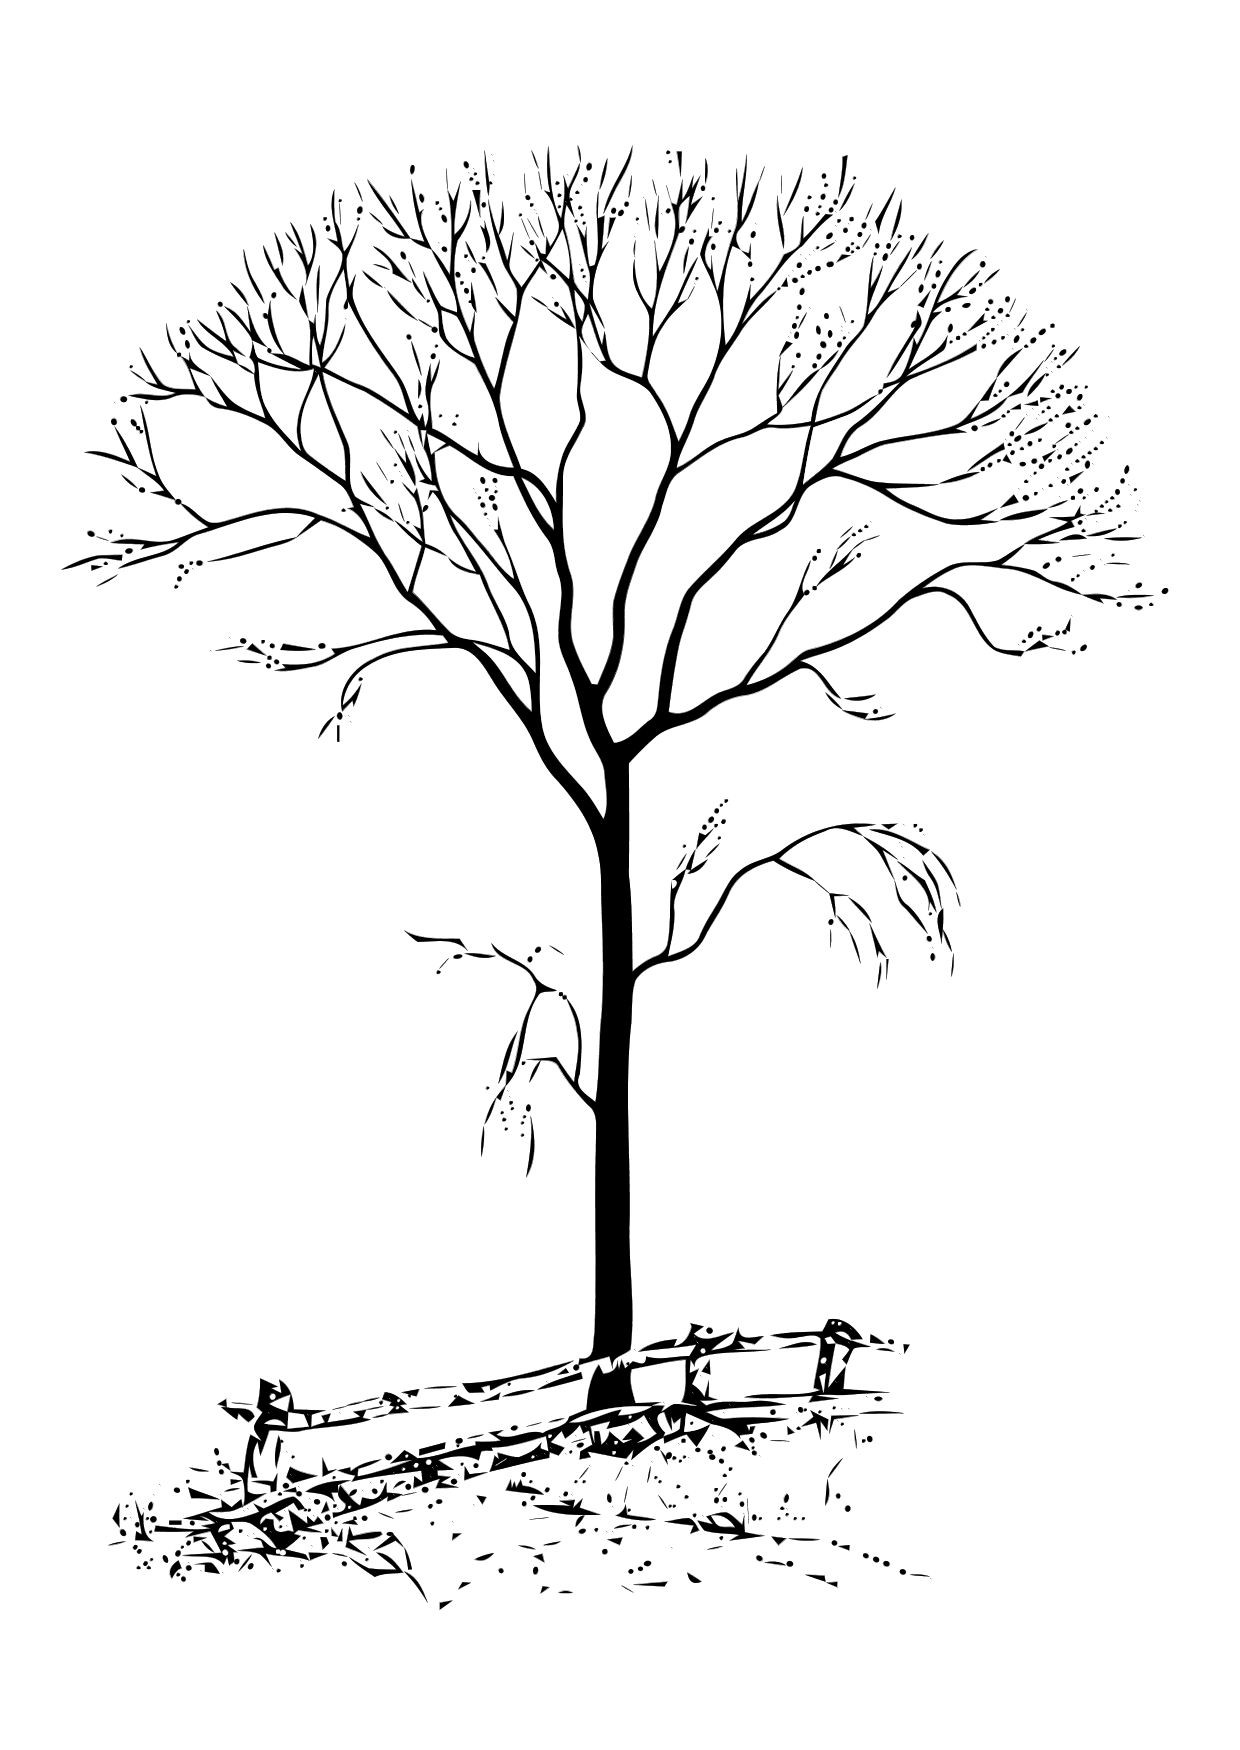 1240x1750 Tree Coloring Pages With No Leaves Elegant The Helpful Art Teacher